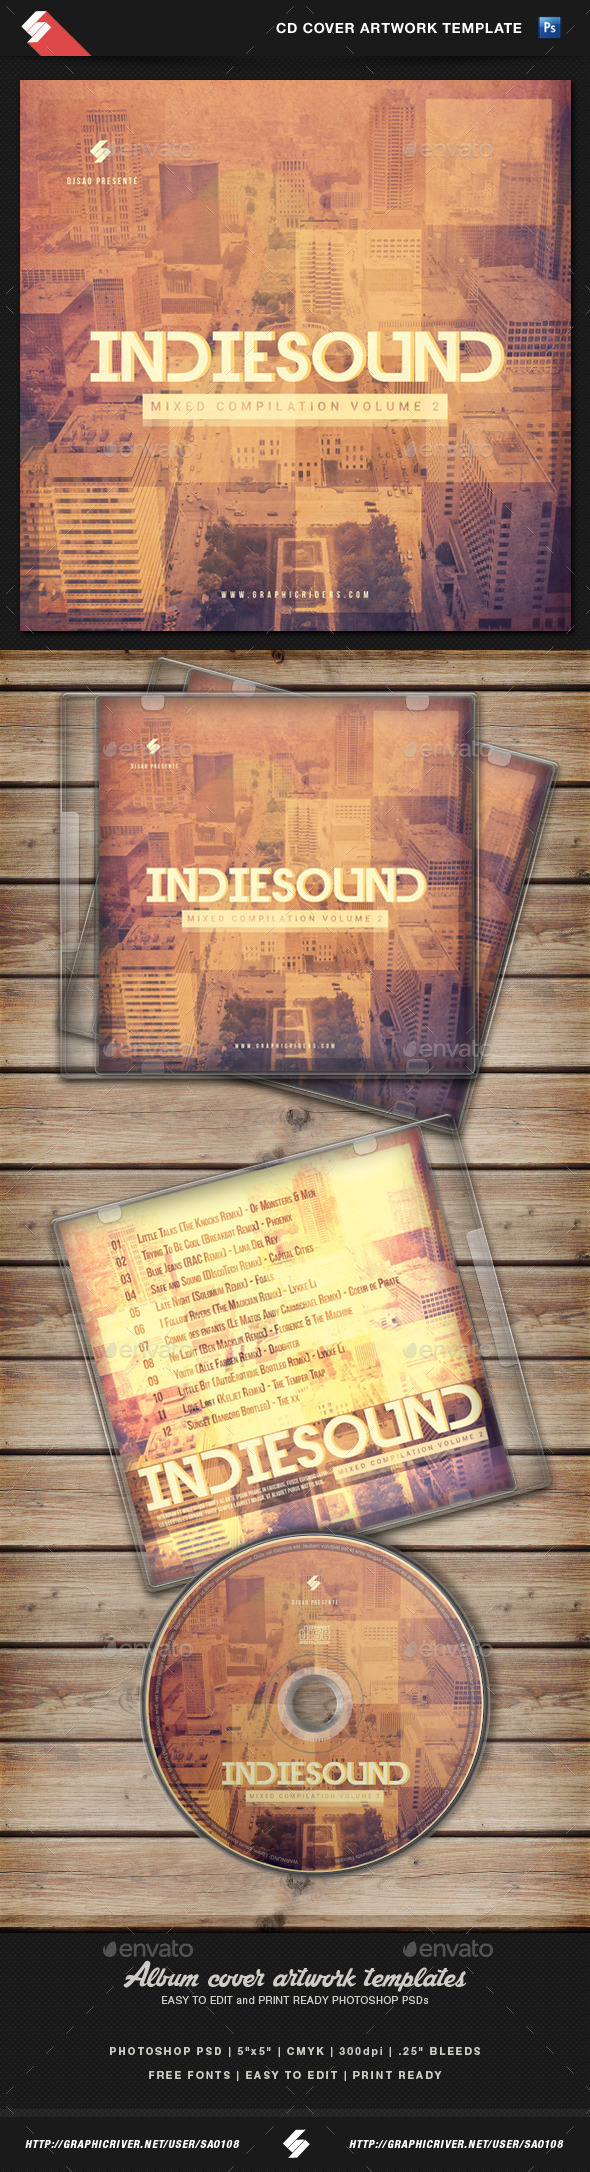 GraphicRiver Indie Sound vol.2 CD Cover Artwork Template 11010751